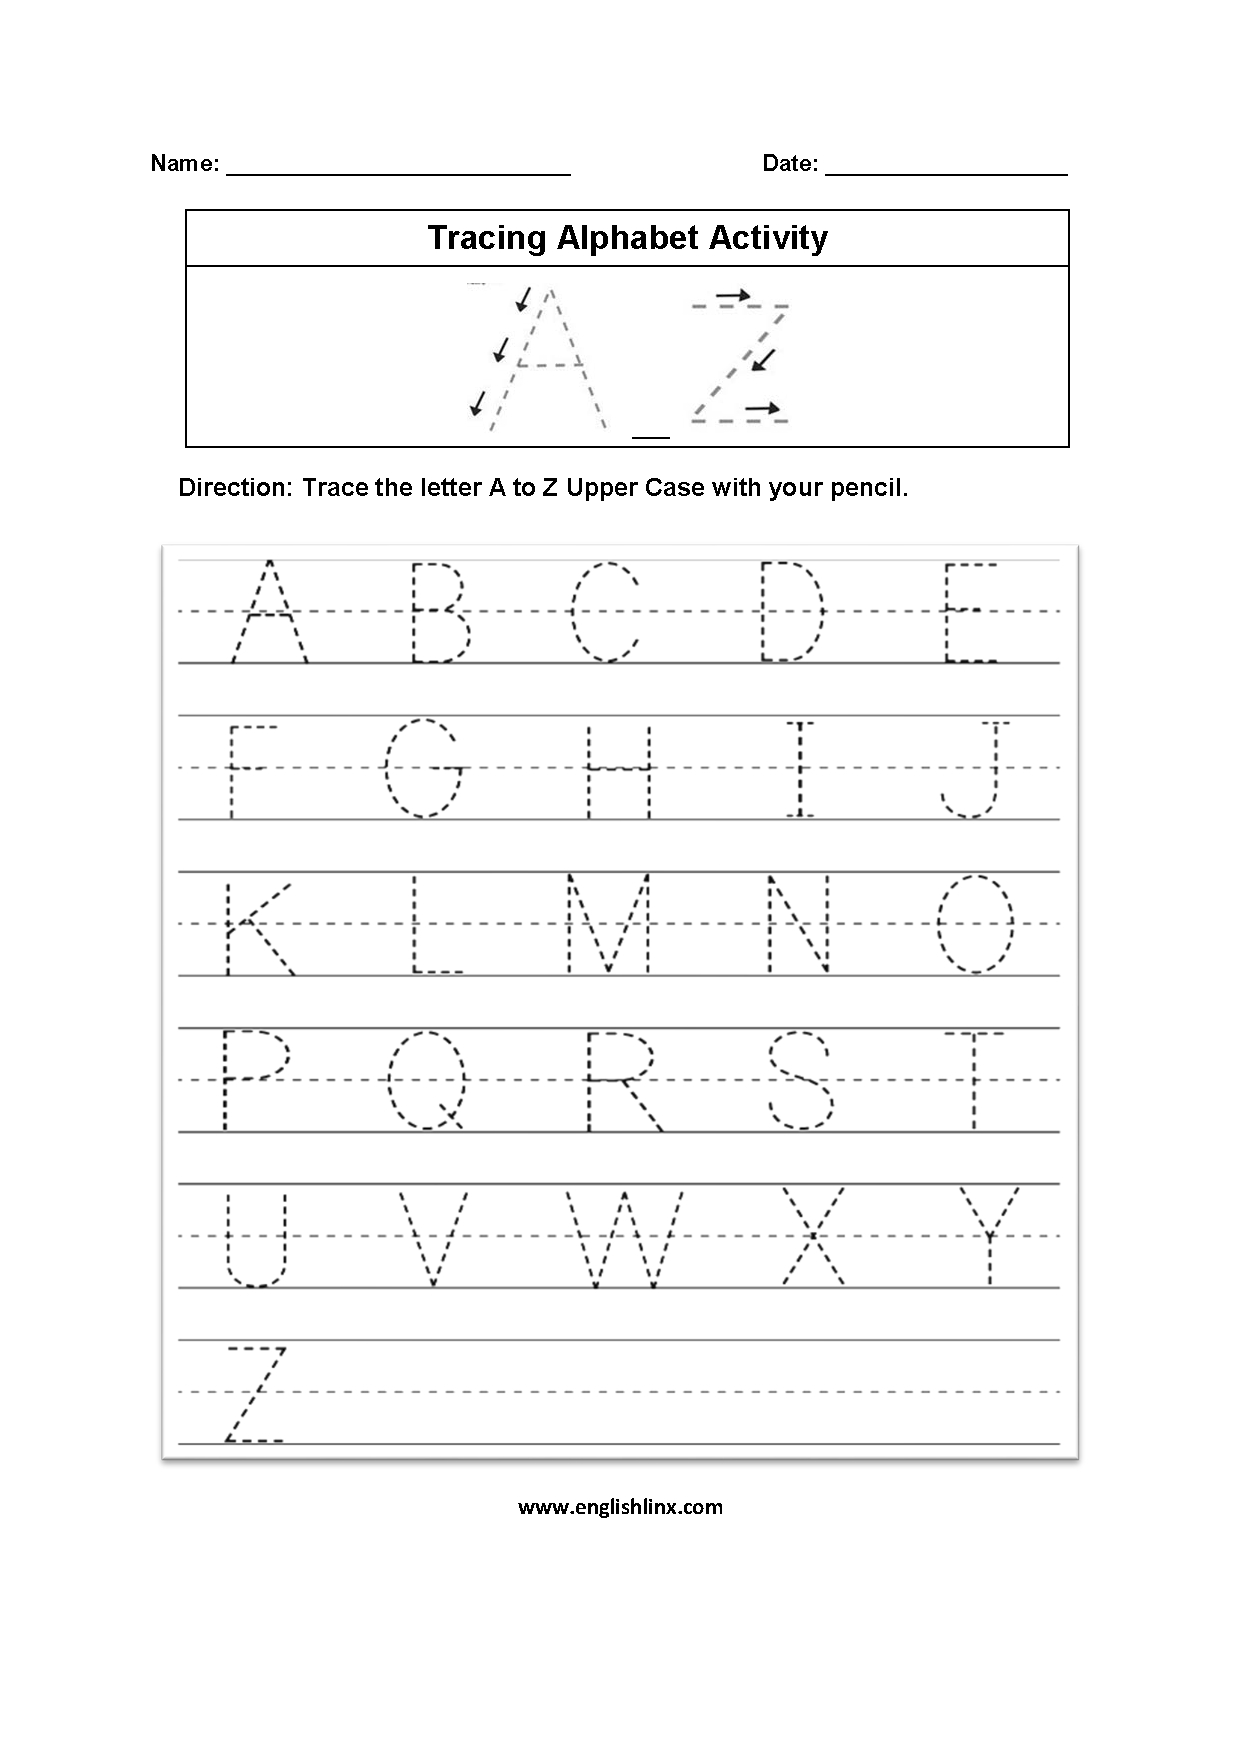 Englishlinx | Alphabet Worksheets in Alphabet Worksheets English